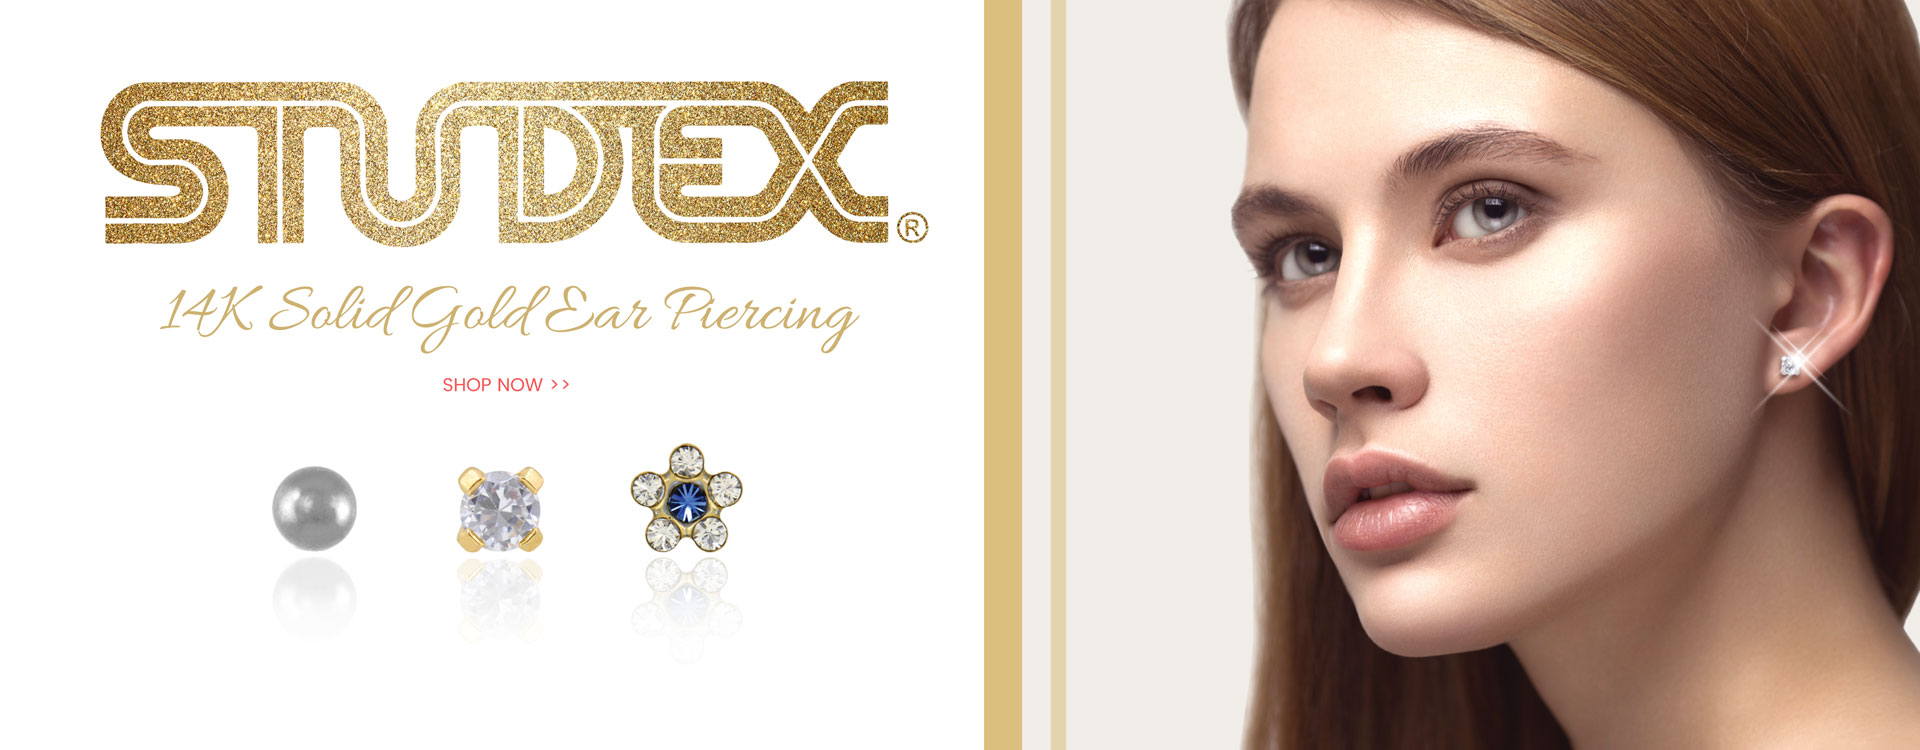 14K-SOLID-GOLD-EAR-PIERCING-1920x750 Distributor of Studex Ear Piercing, Toys, Jewellery, Beauty Products - Adnohr